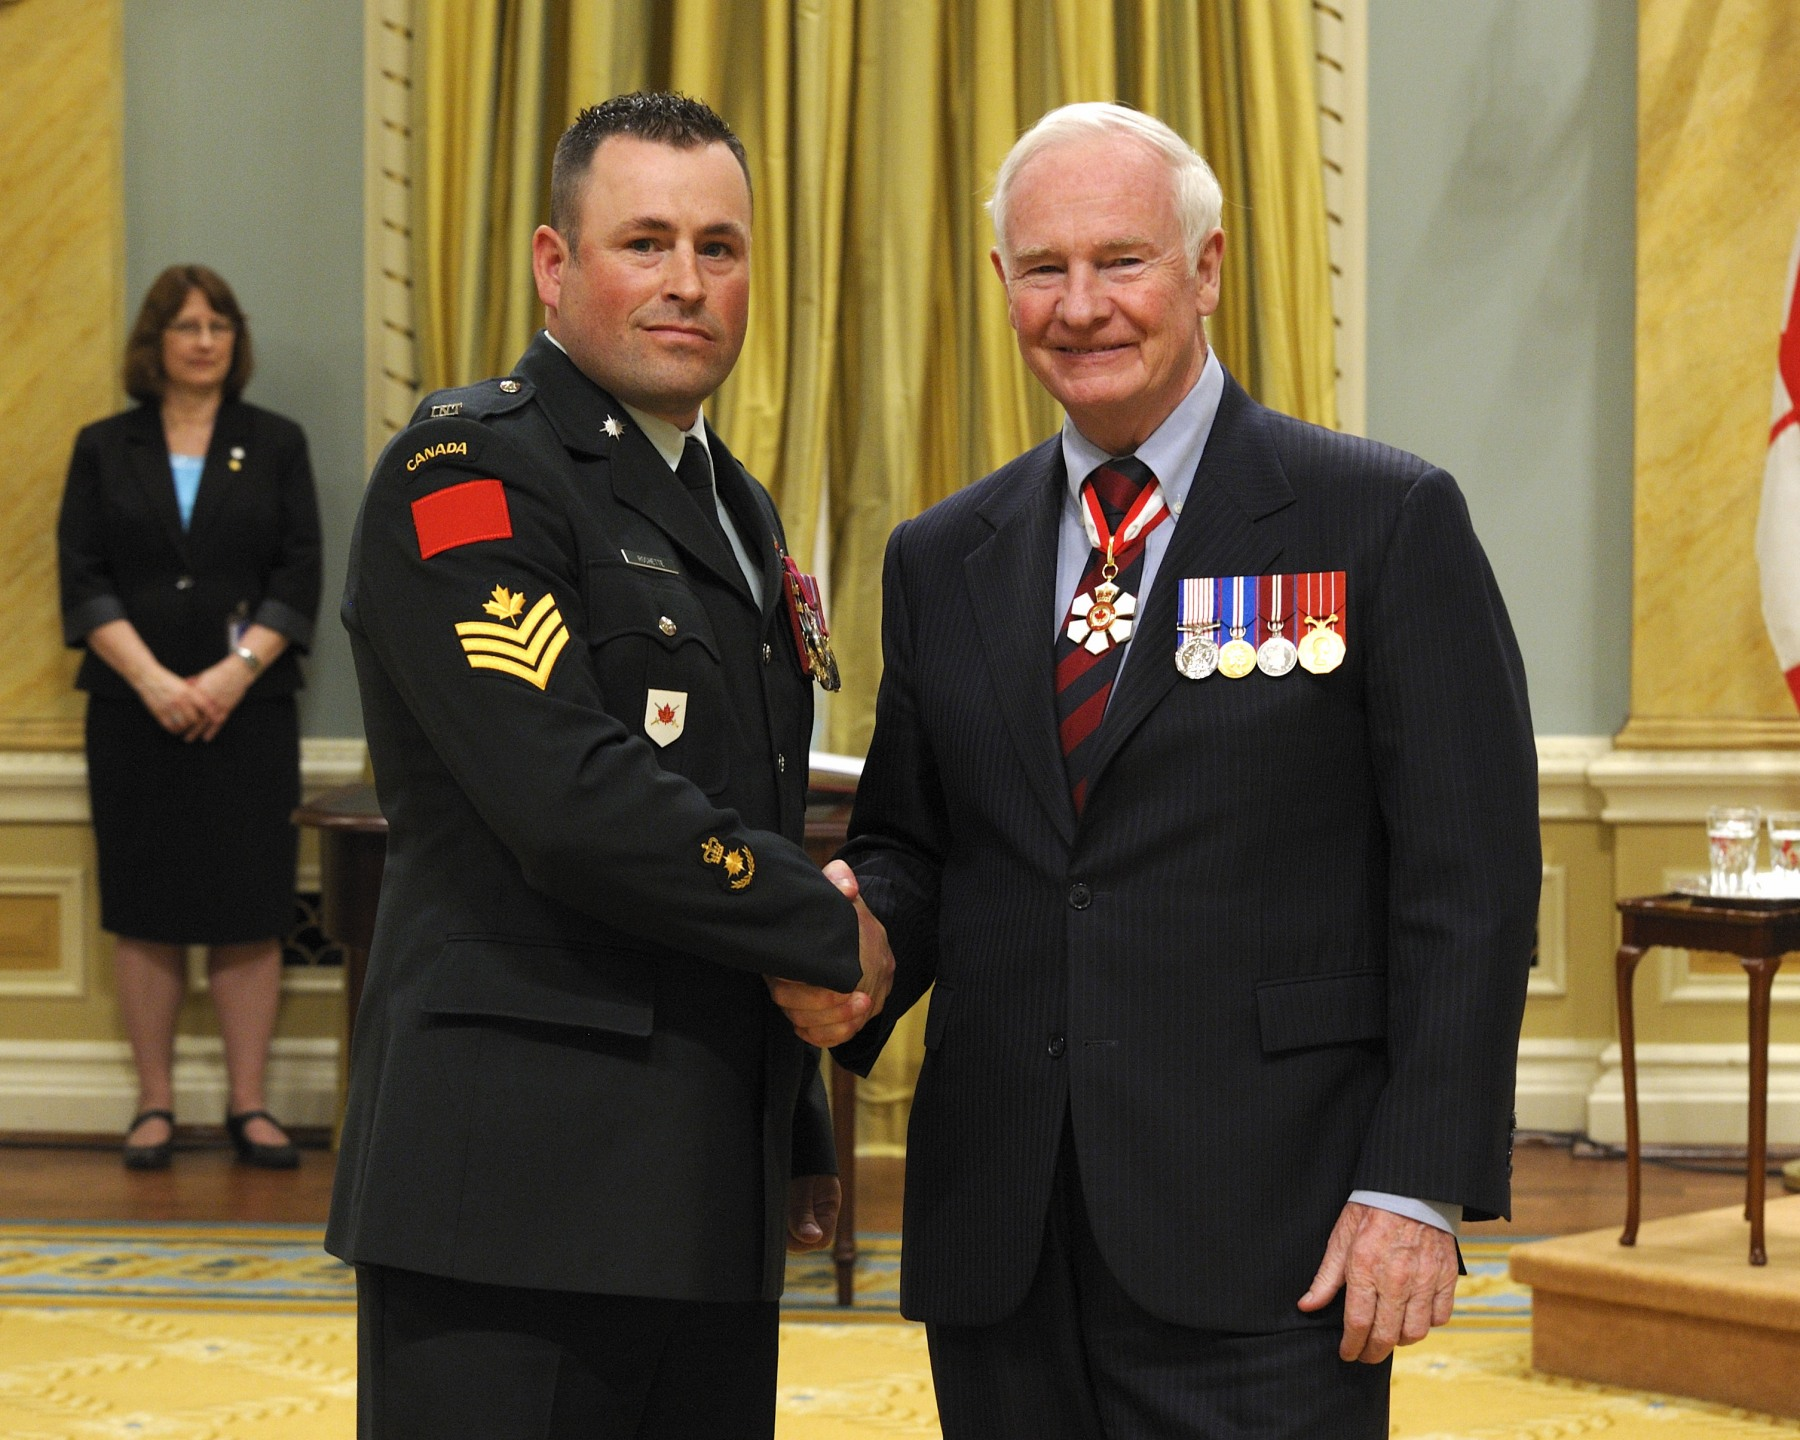 On June 17, 2009, Master Corporal Daniel Rochette, M.B., C.D. (Sudbury and Napanee, Ontario), saved a man from possible drowning in the Jacques-Cartier River, in Pont-Rouge, Quebec. Master Corporal Rochette was fishing with his family when a man, standing near them, fell into the water and was carried off by the river's powerful current. Acting quickly, Master Corporal Rochette jumped in after him, but the strong current made the situation very dangerous for both men. Master Corporal Rochette had to let go and return to the shore, from which he held out a log to the distressed man. After a few attempts, the victim managed to grab on and the rescuer pulled him to shore.